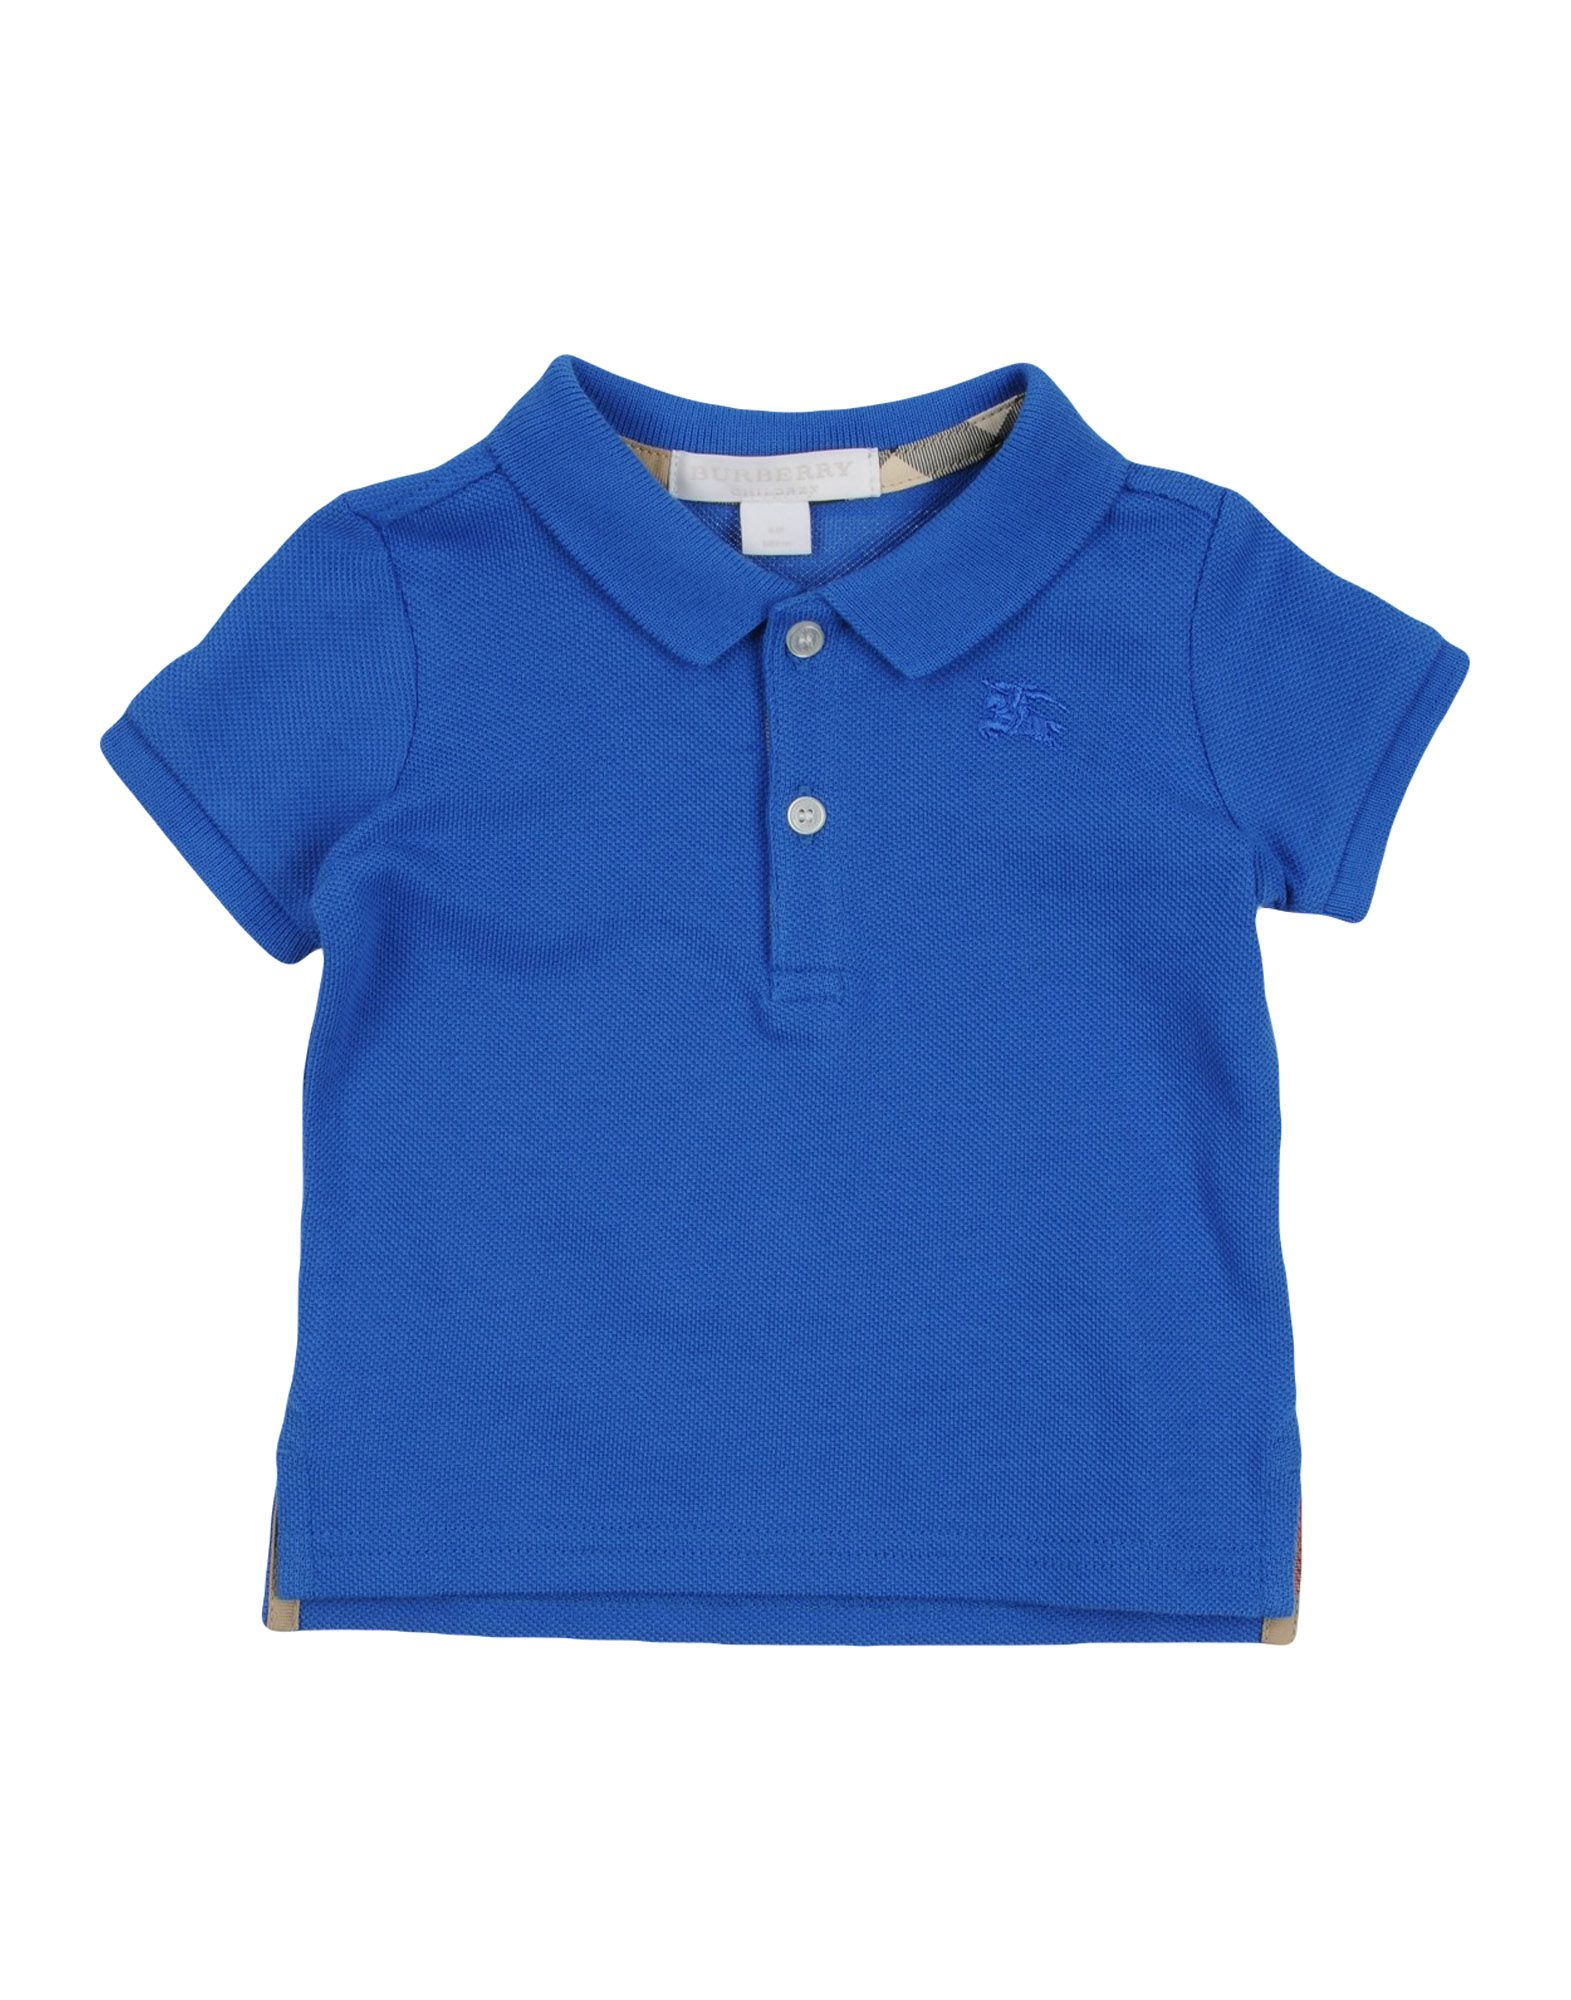 Burberry Polo Shirt Boy 0 24 Months Online On Yoox United States